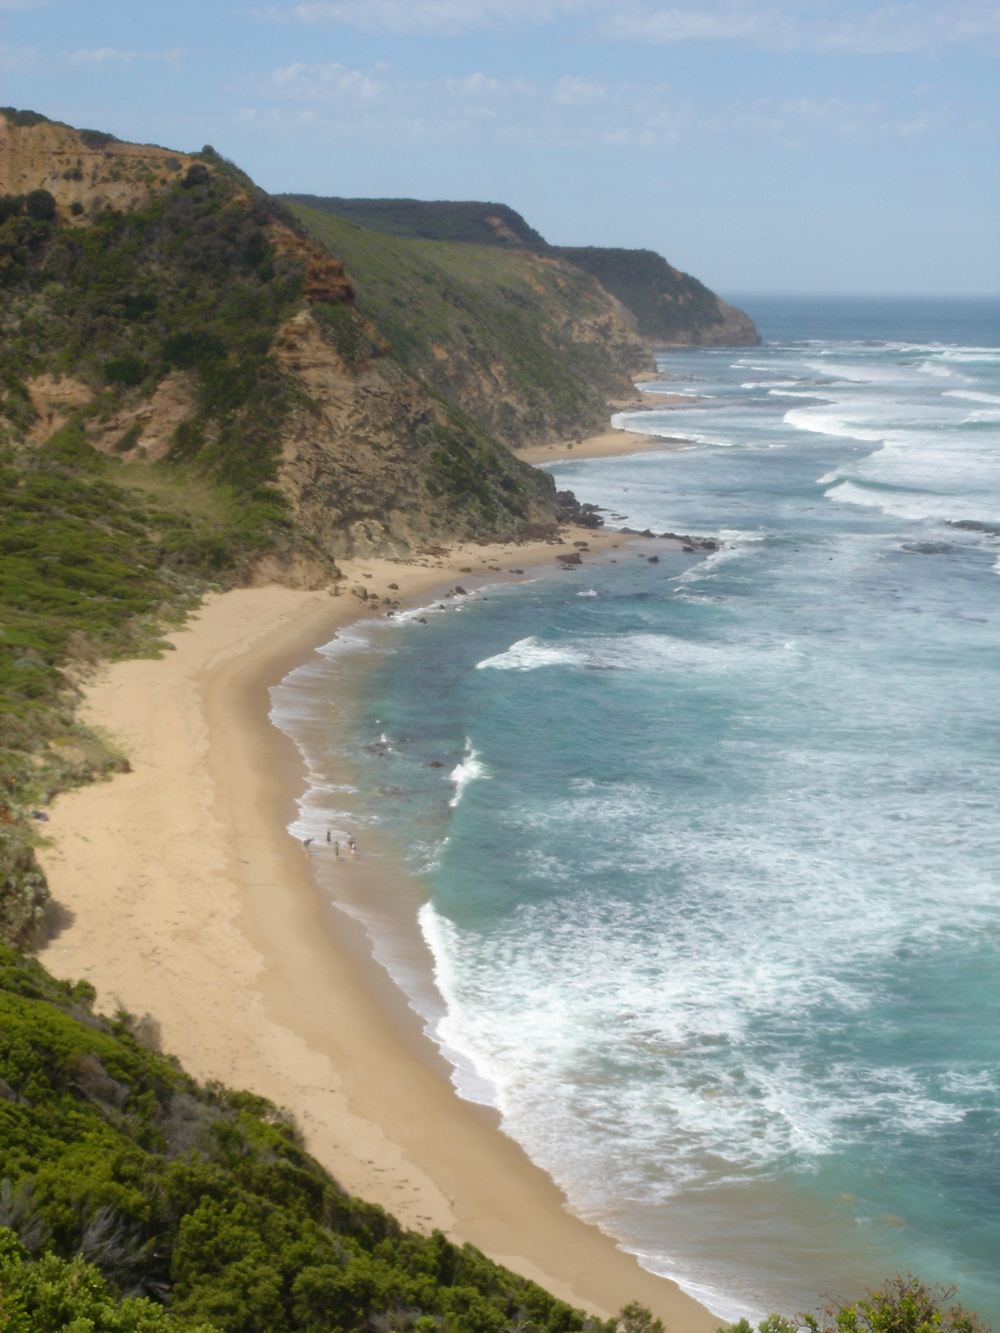 The route of the Great Ocean Walk includes both beaches and headlands.